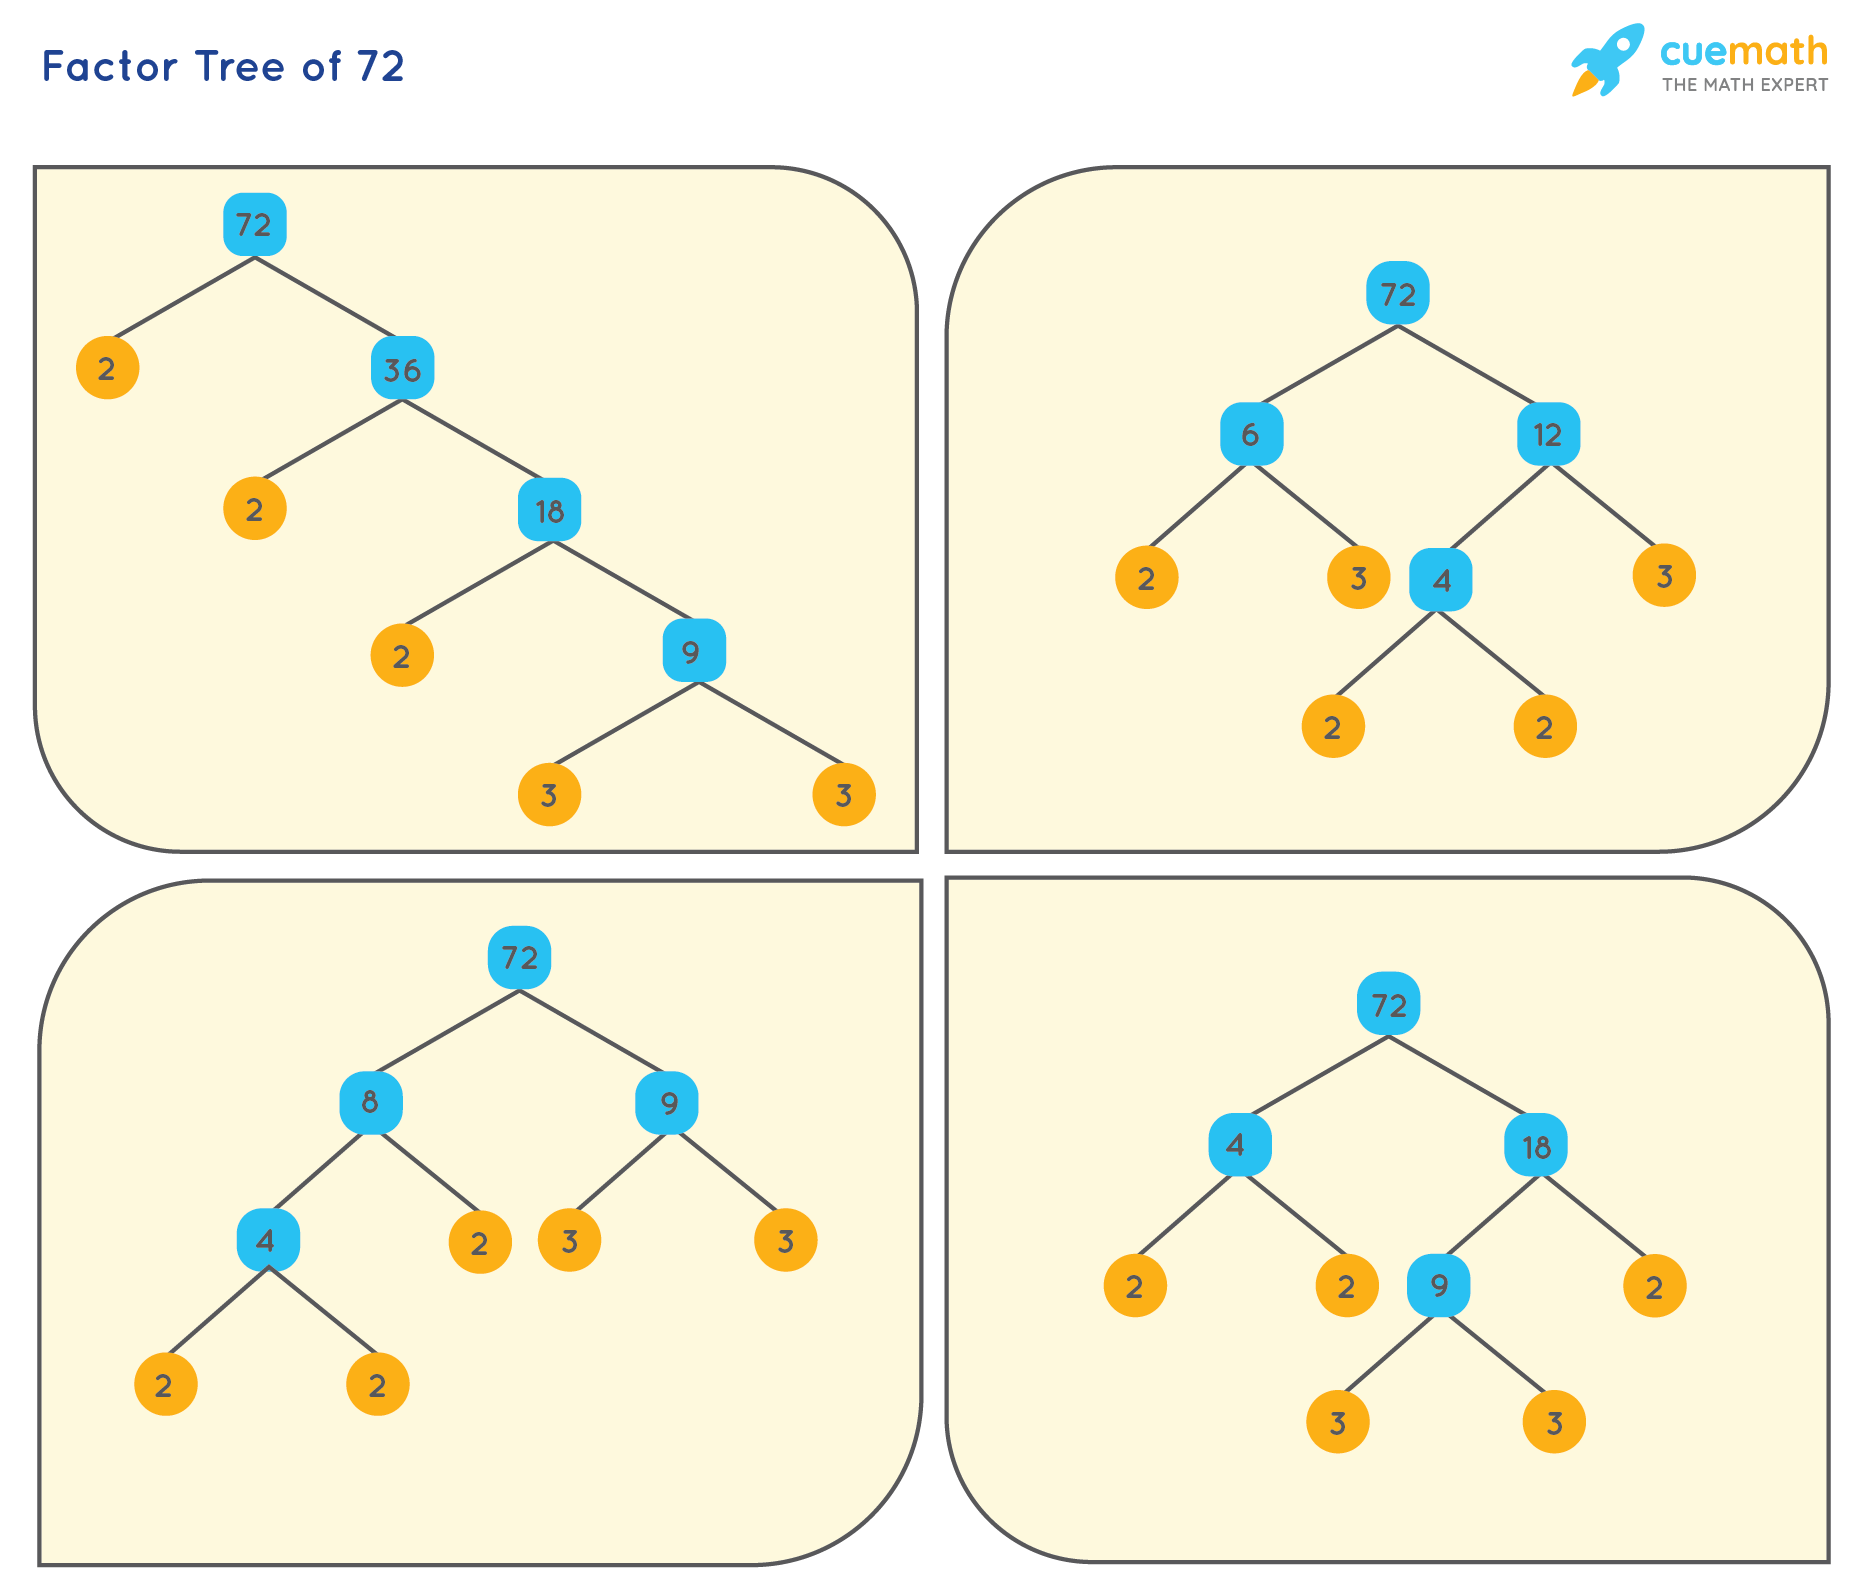 Factor Tree of 72